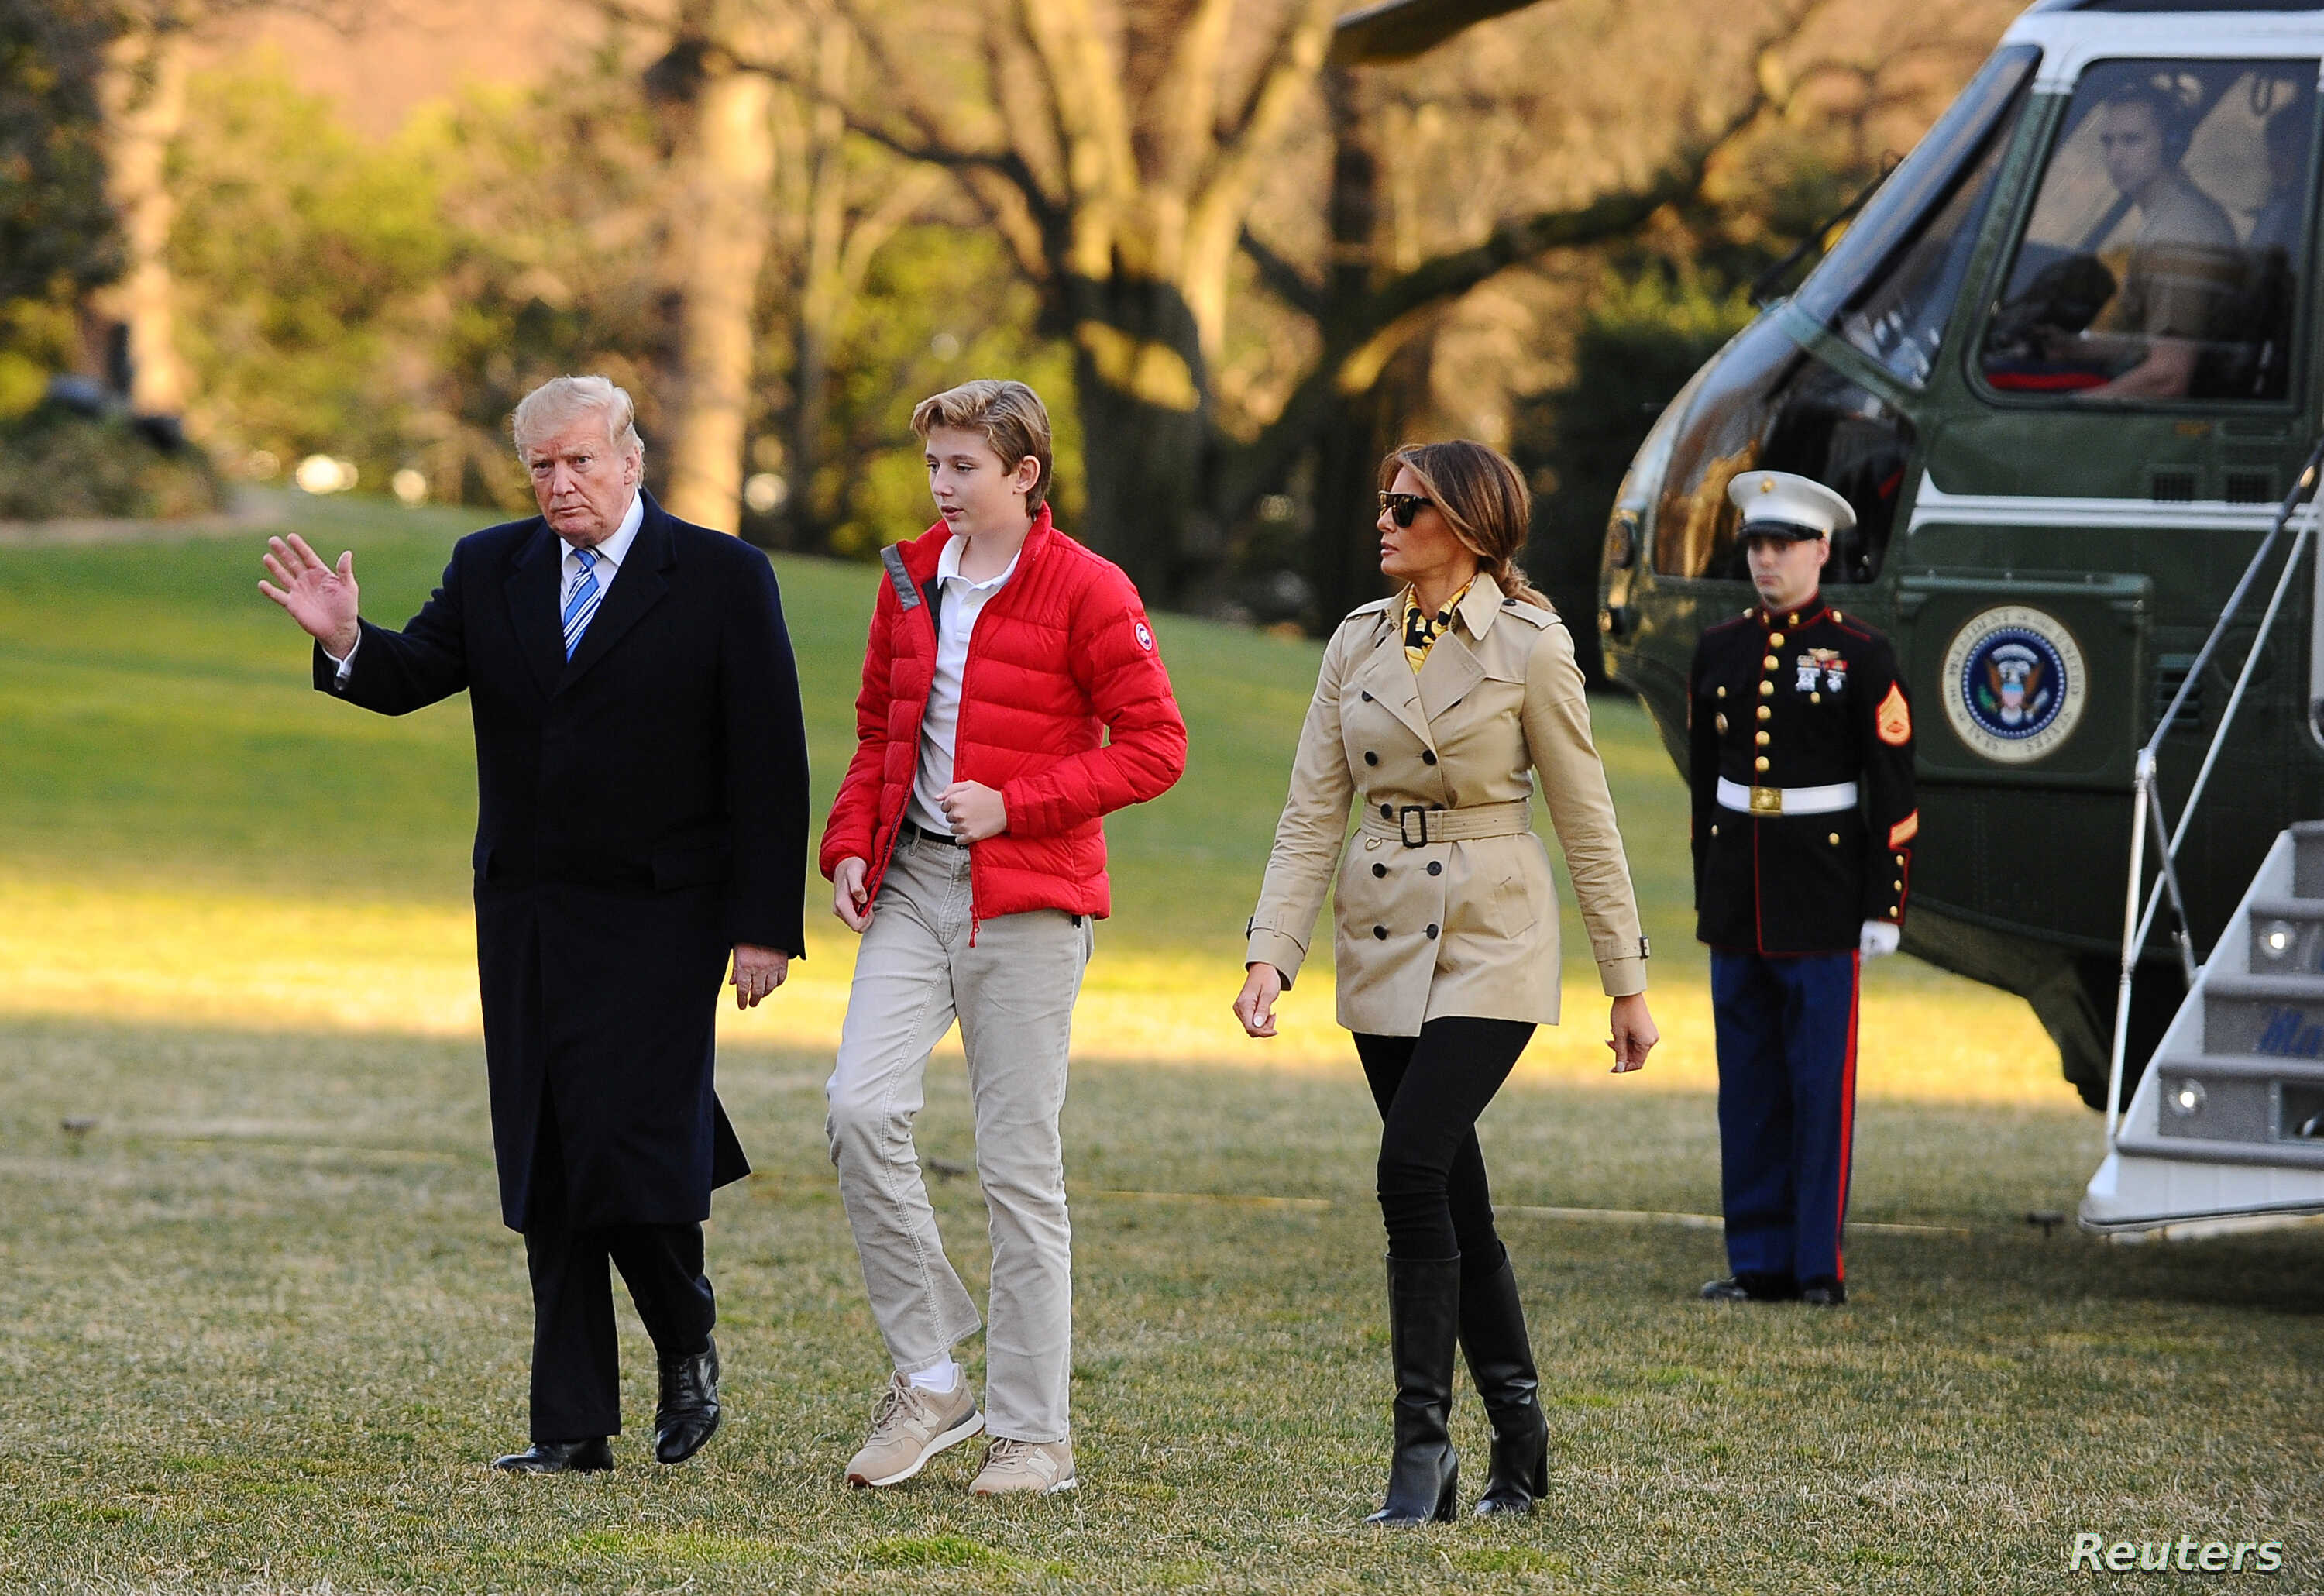 Happy Birthday! Trump's Youngest Son, Barron, Turns 13 | Voice of America -  English